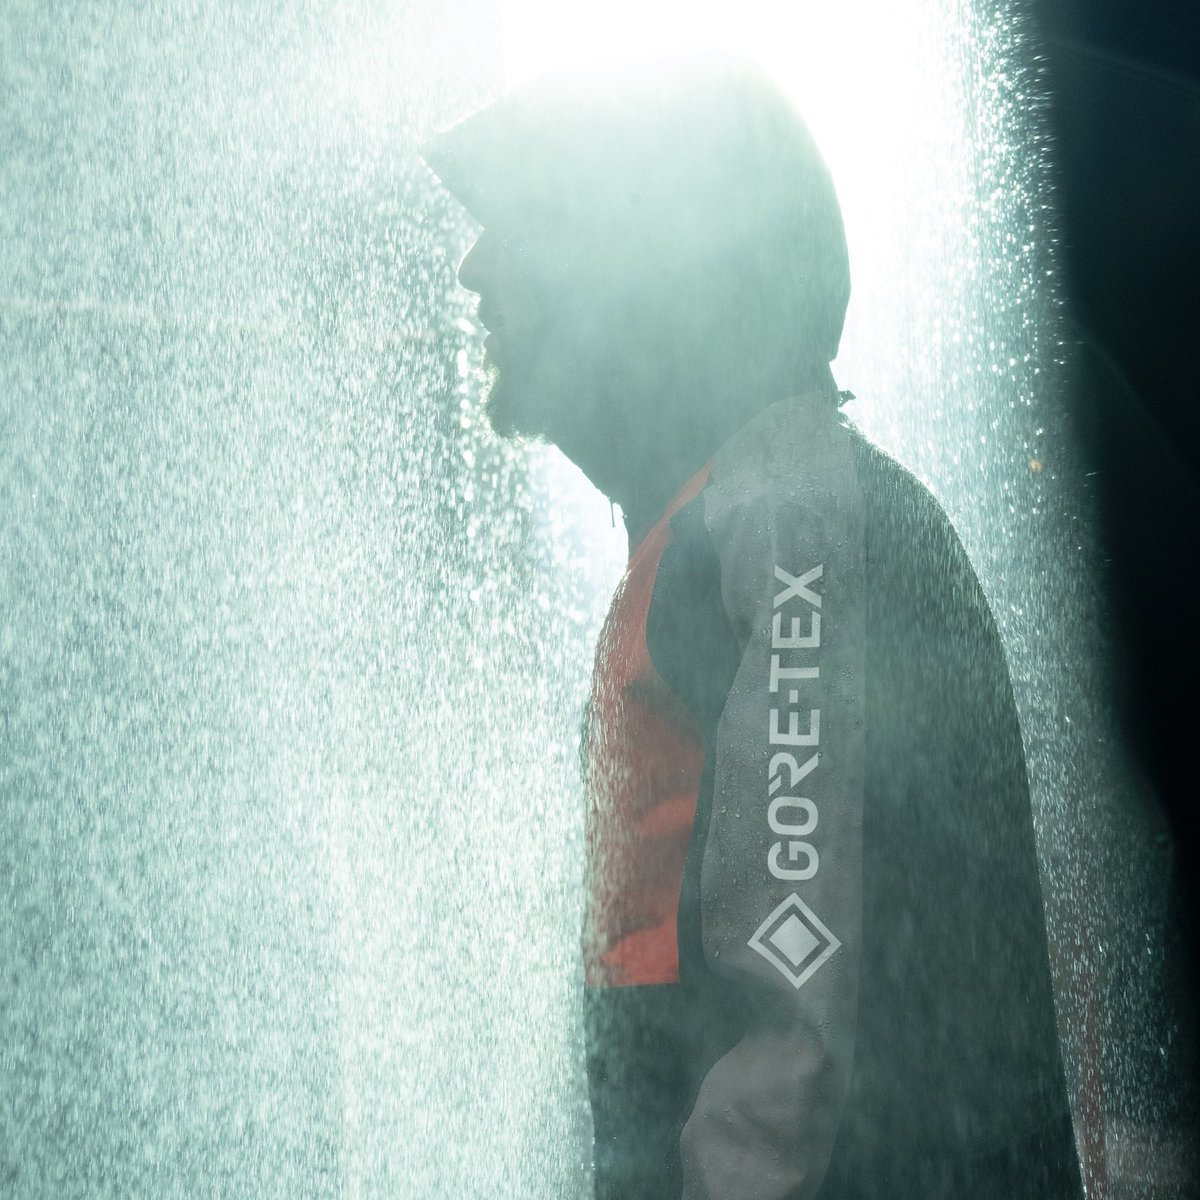 Our specially-engineered Rain Room simulates drizzle, downpours, and full-on storms—and any other rain that nature could throw at you. Find out more: gtx.to/2PXm7bX #TestedForLife